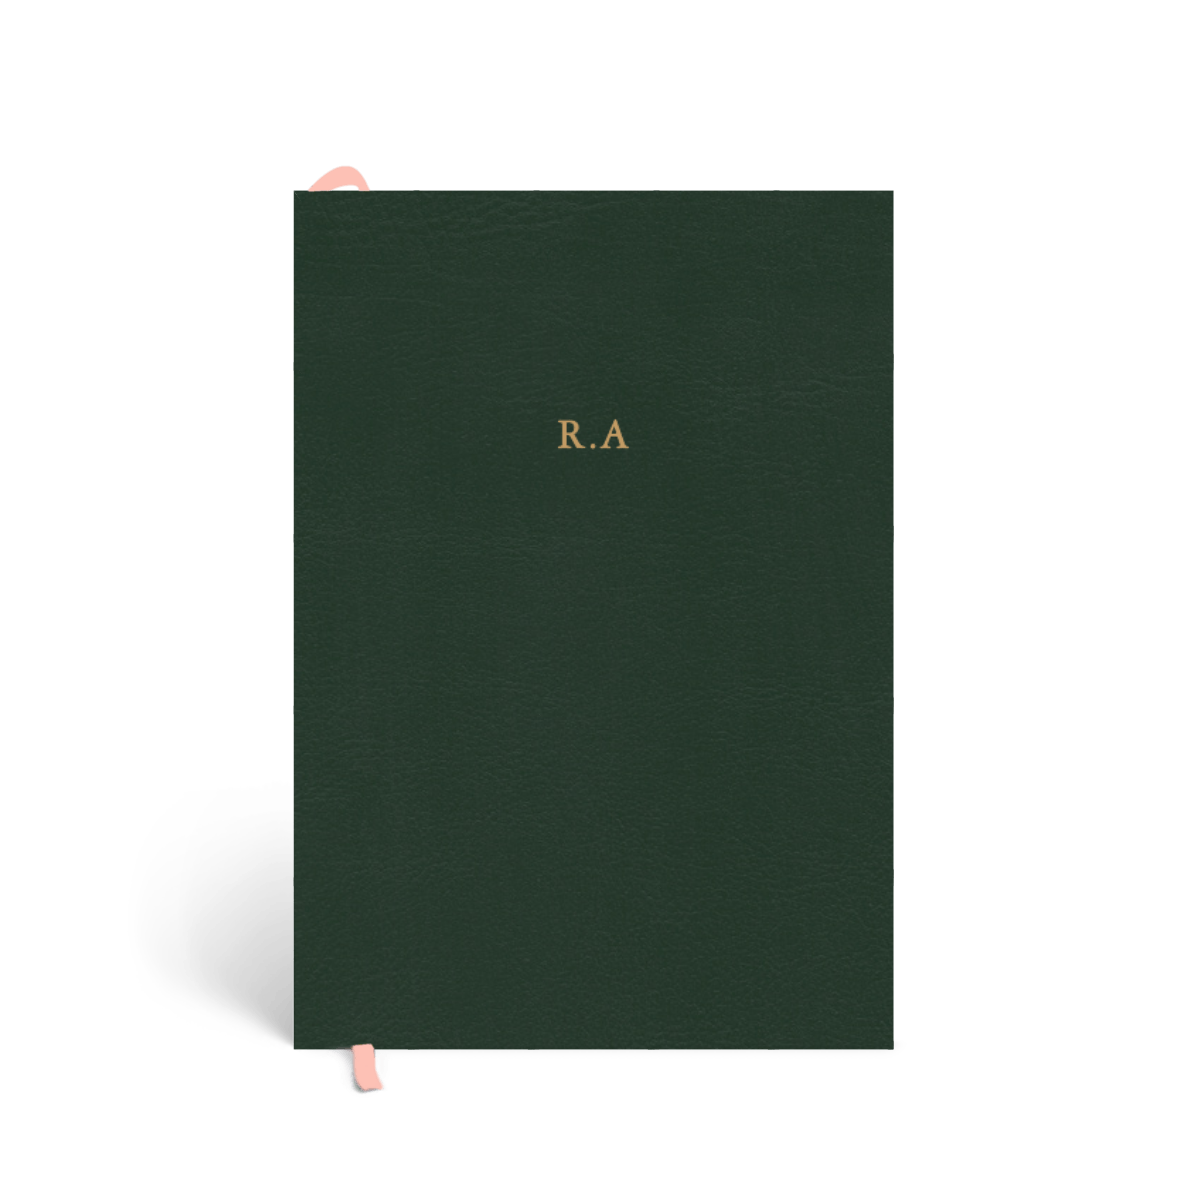 Https%3a%2f%2fwww.papier.com%2fproduct image%2f95358%2f112%2fpine green monogram 23874 front 1573232787.png?ixlib=rb 1.1